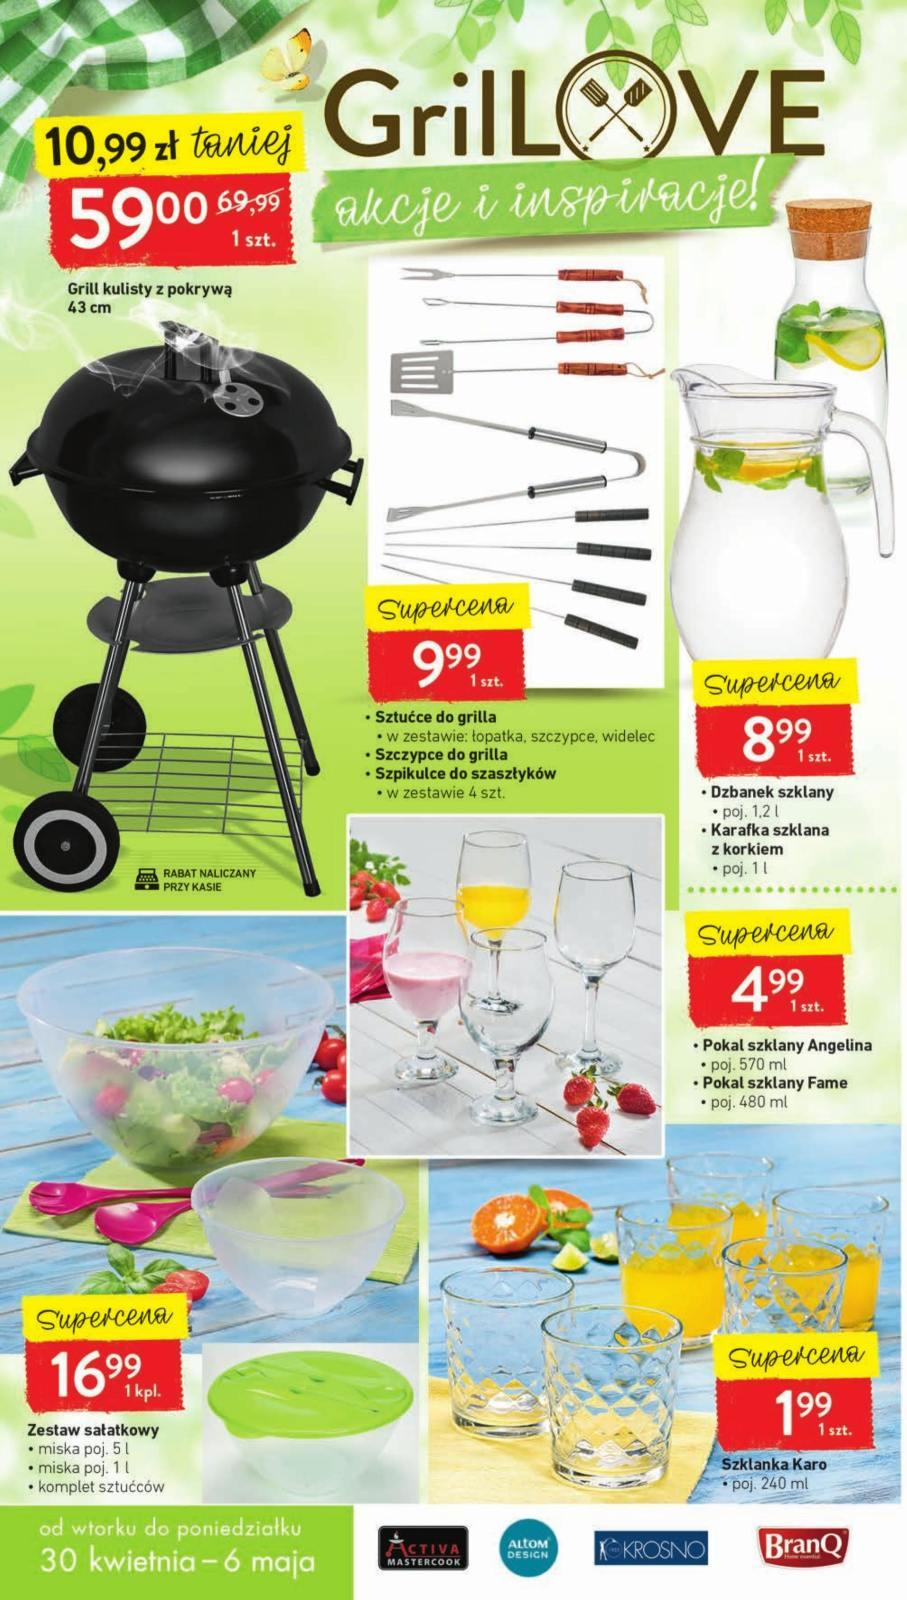 Gazetka promocyjna Intermarche do 06/05/2019 str.1